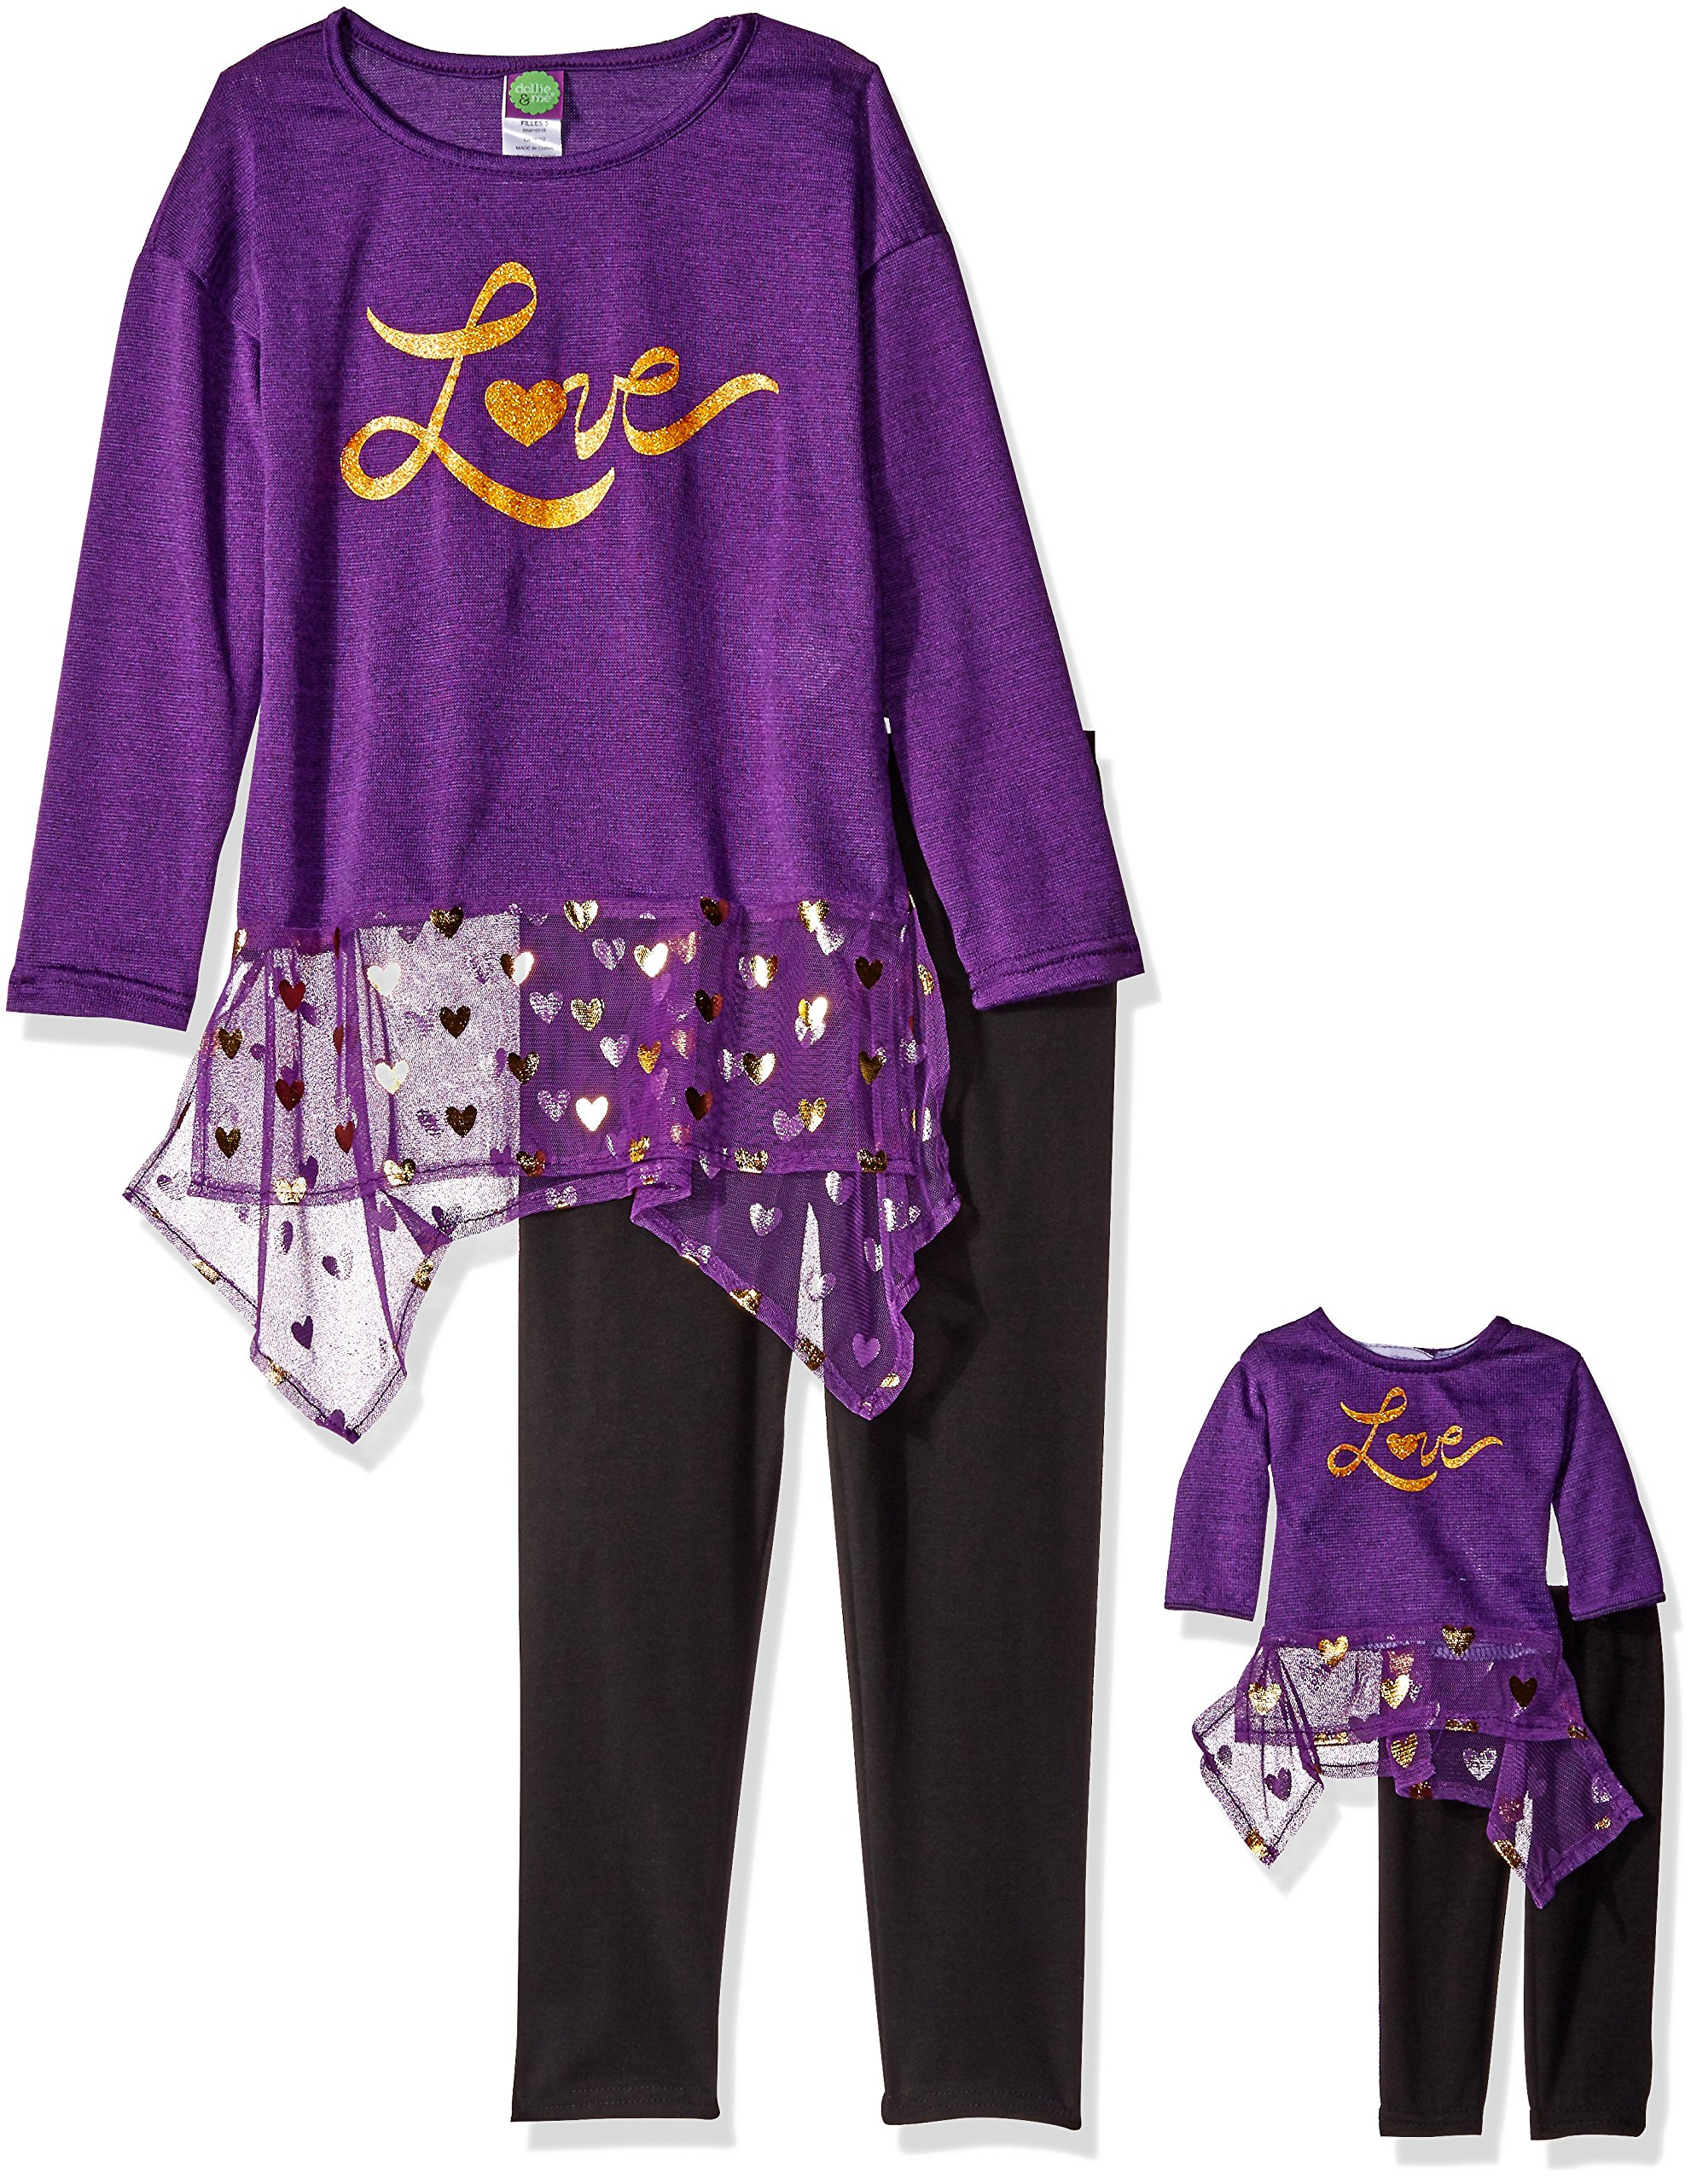 Dollie & Me Little Girls' Sweater Knit and Chiffon Love Dress with Legging, Purple/Black, 6